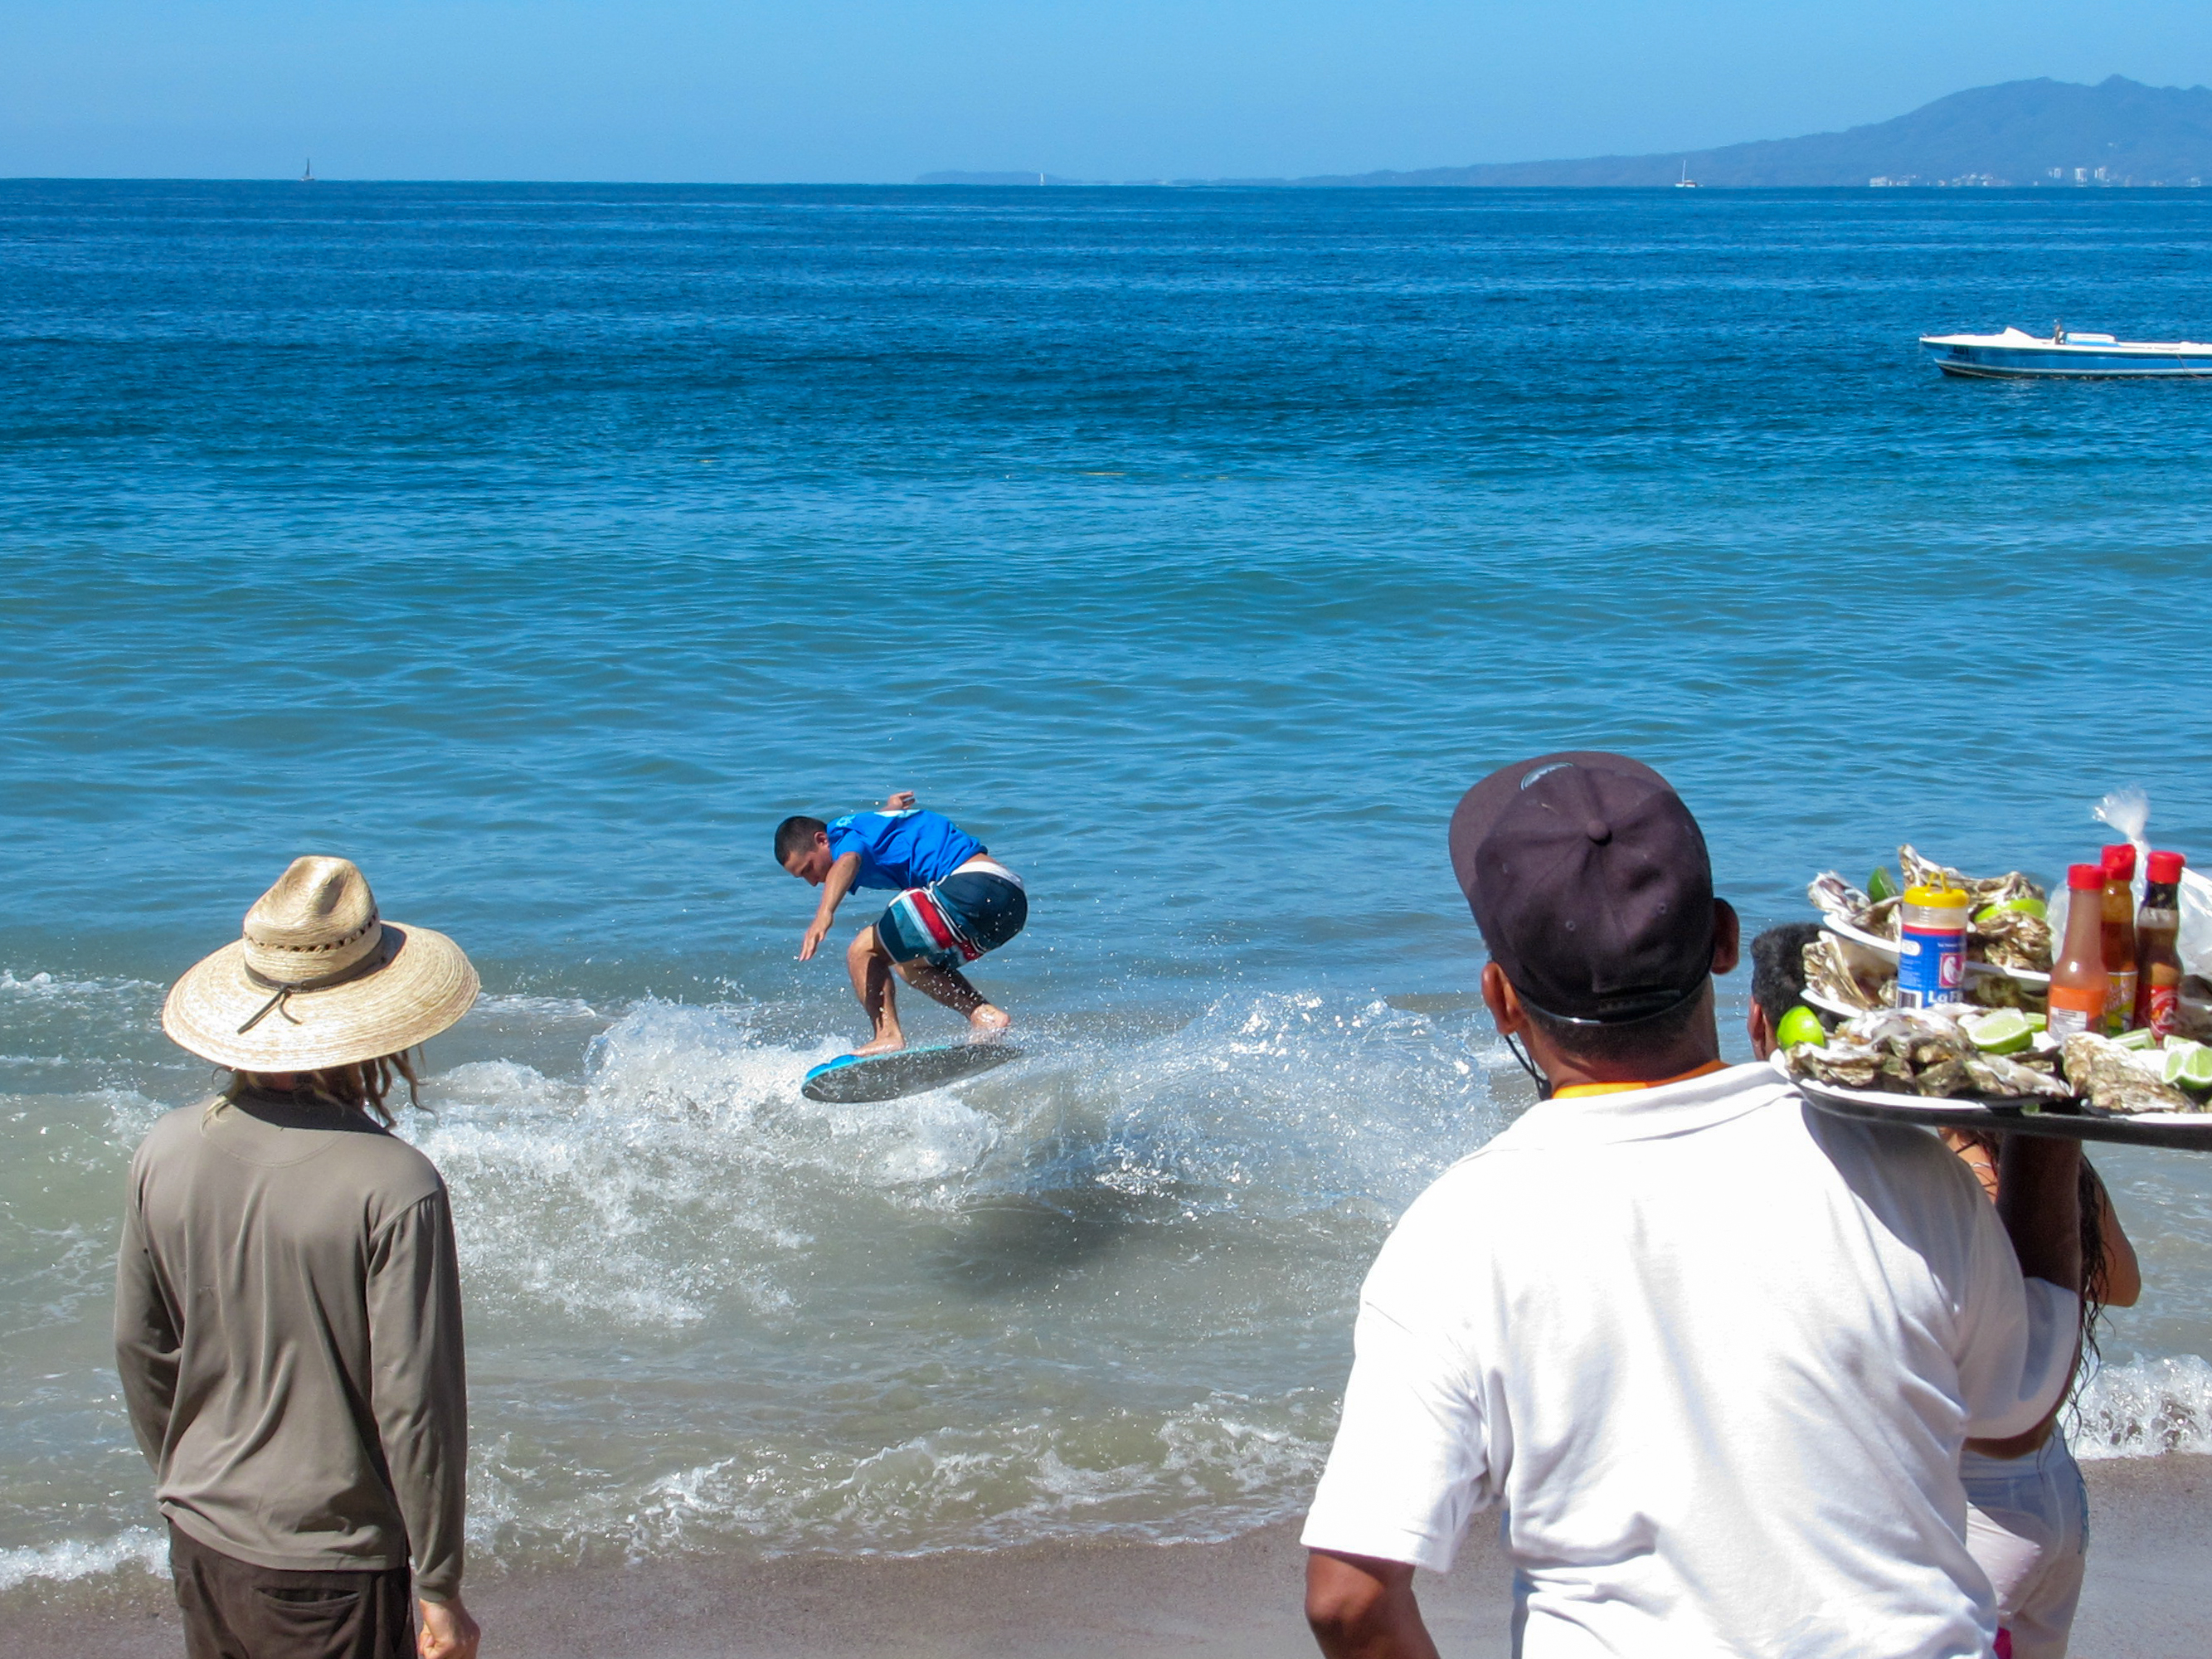 A skimboarder performs an aerial maneuver in Puerto Vallarta.